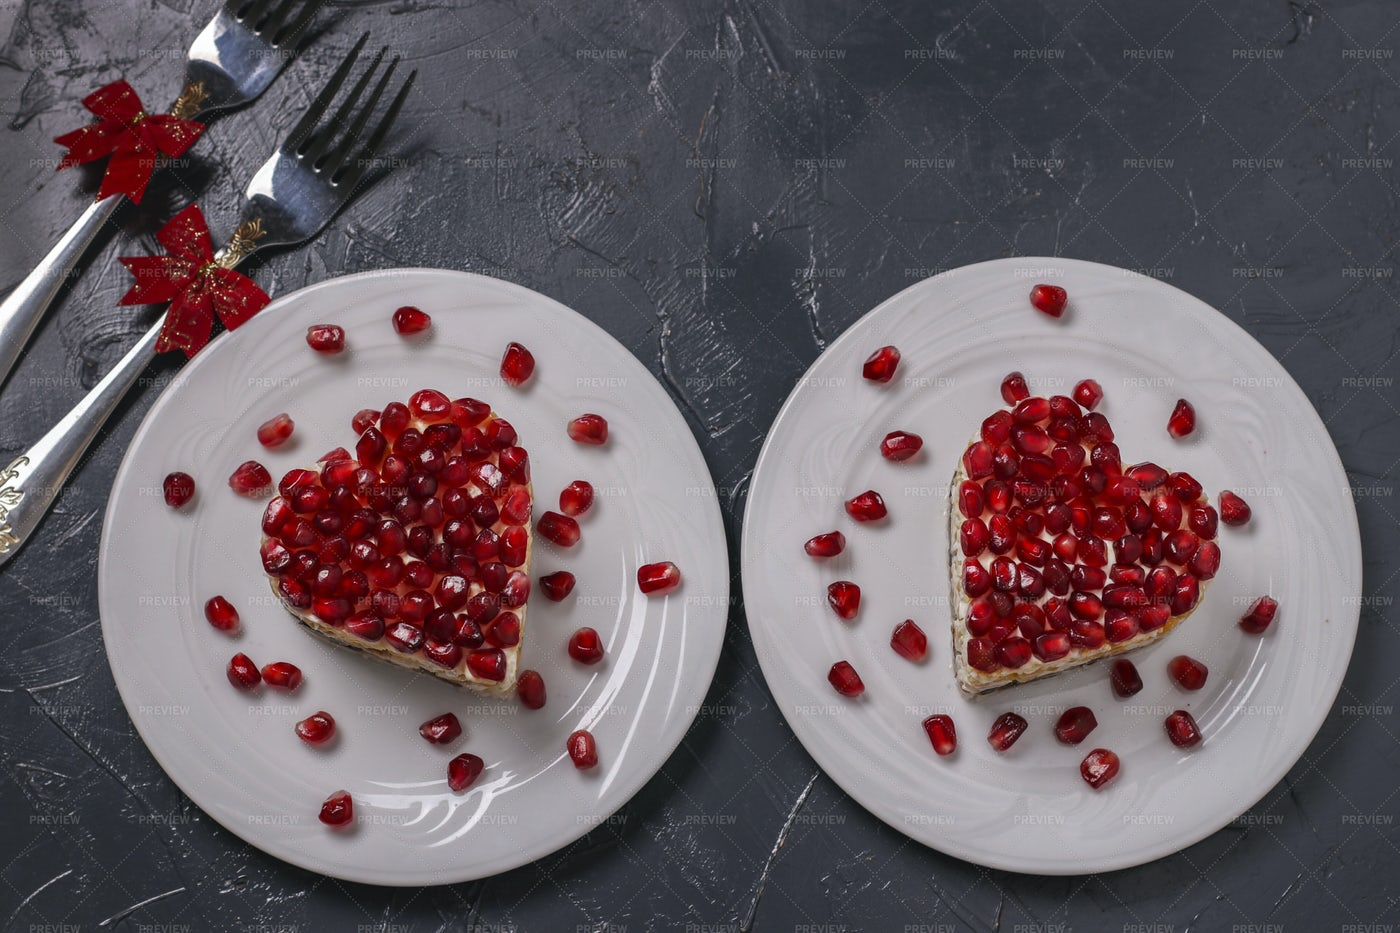 Salad In Shape Of Heart: Stock Photos